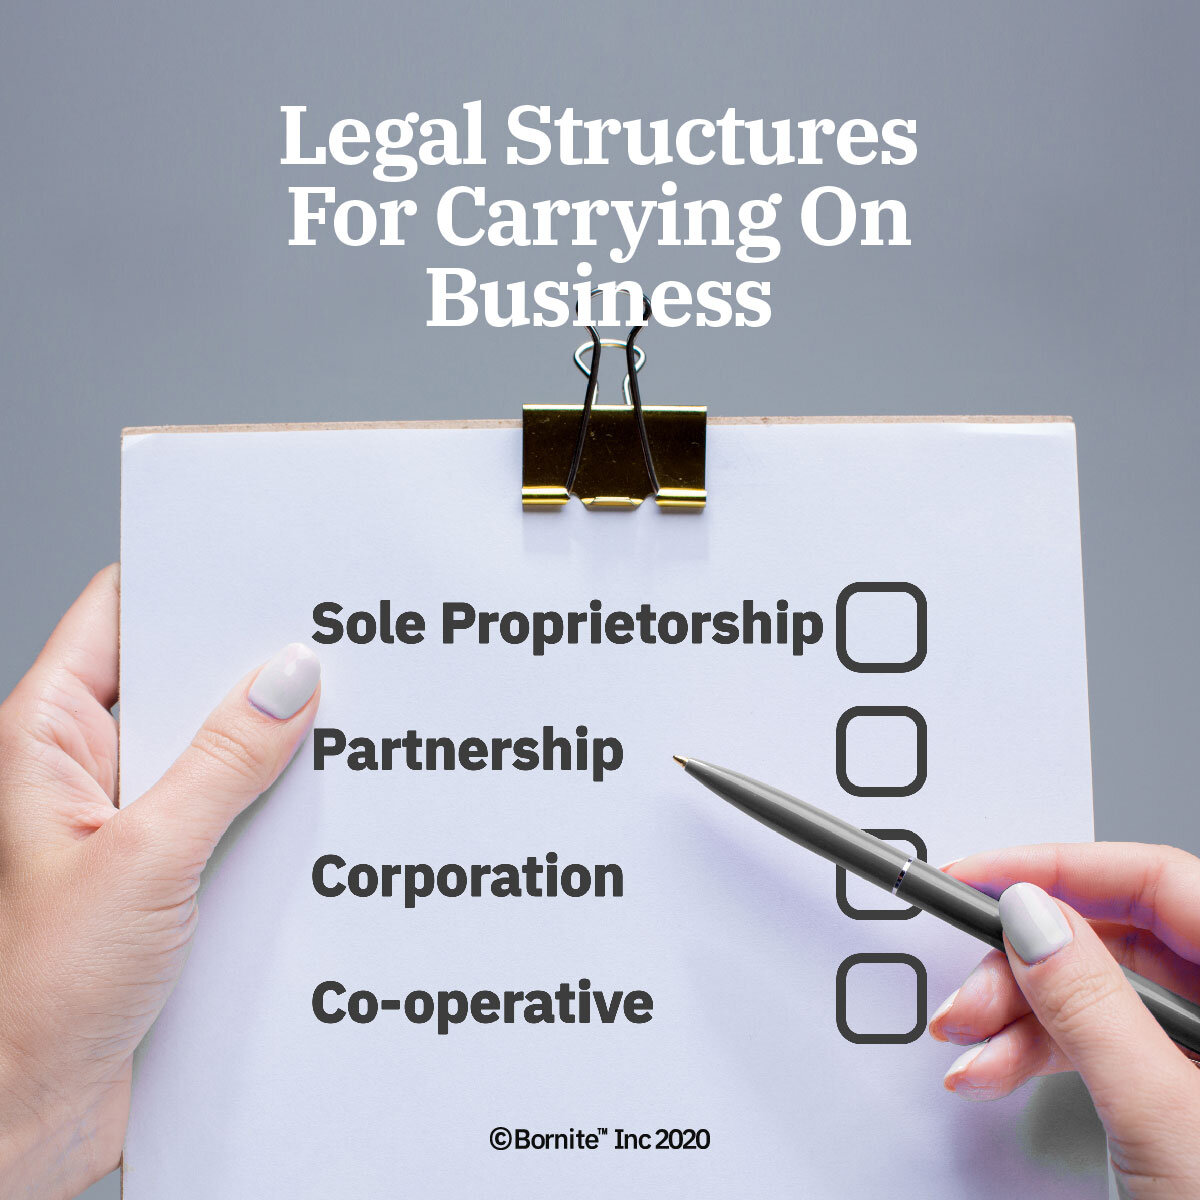 Legal Structures For Carrying On Business